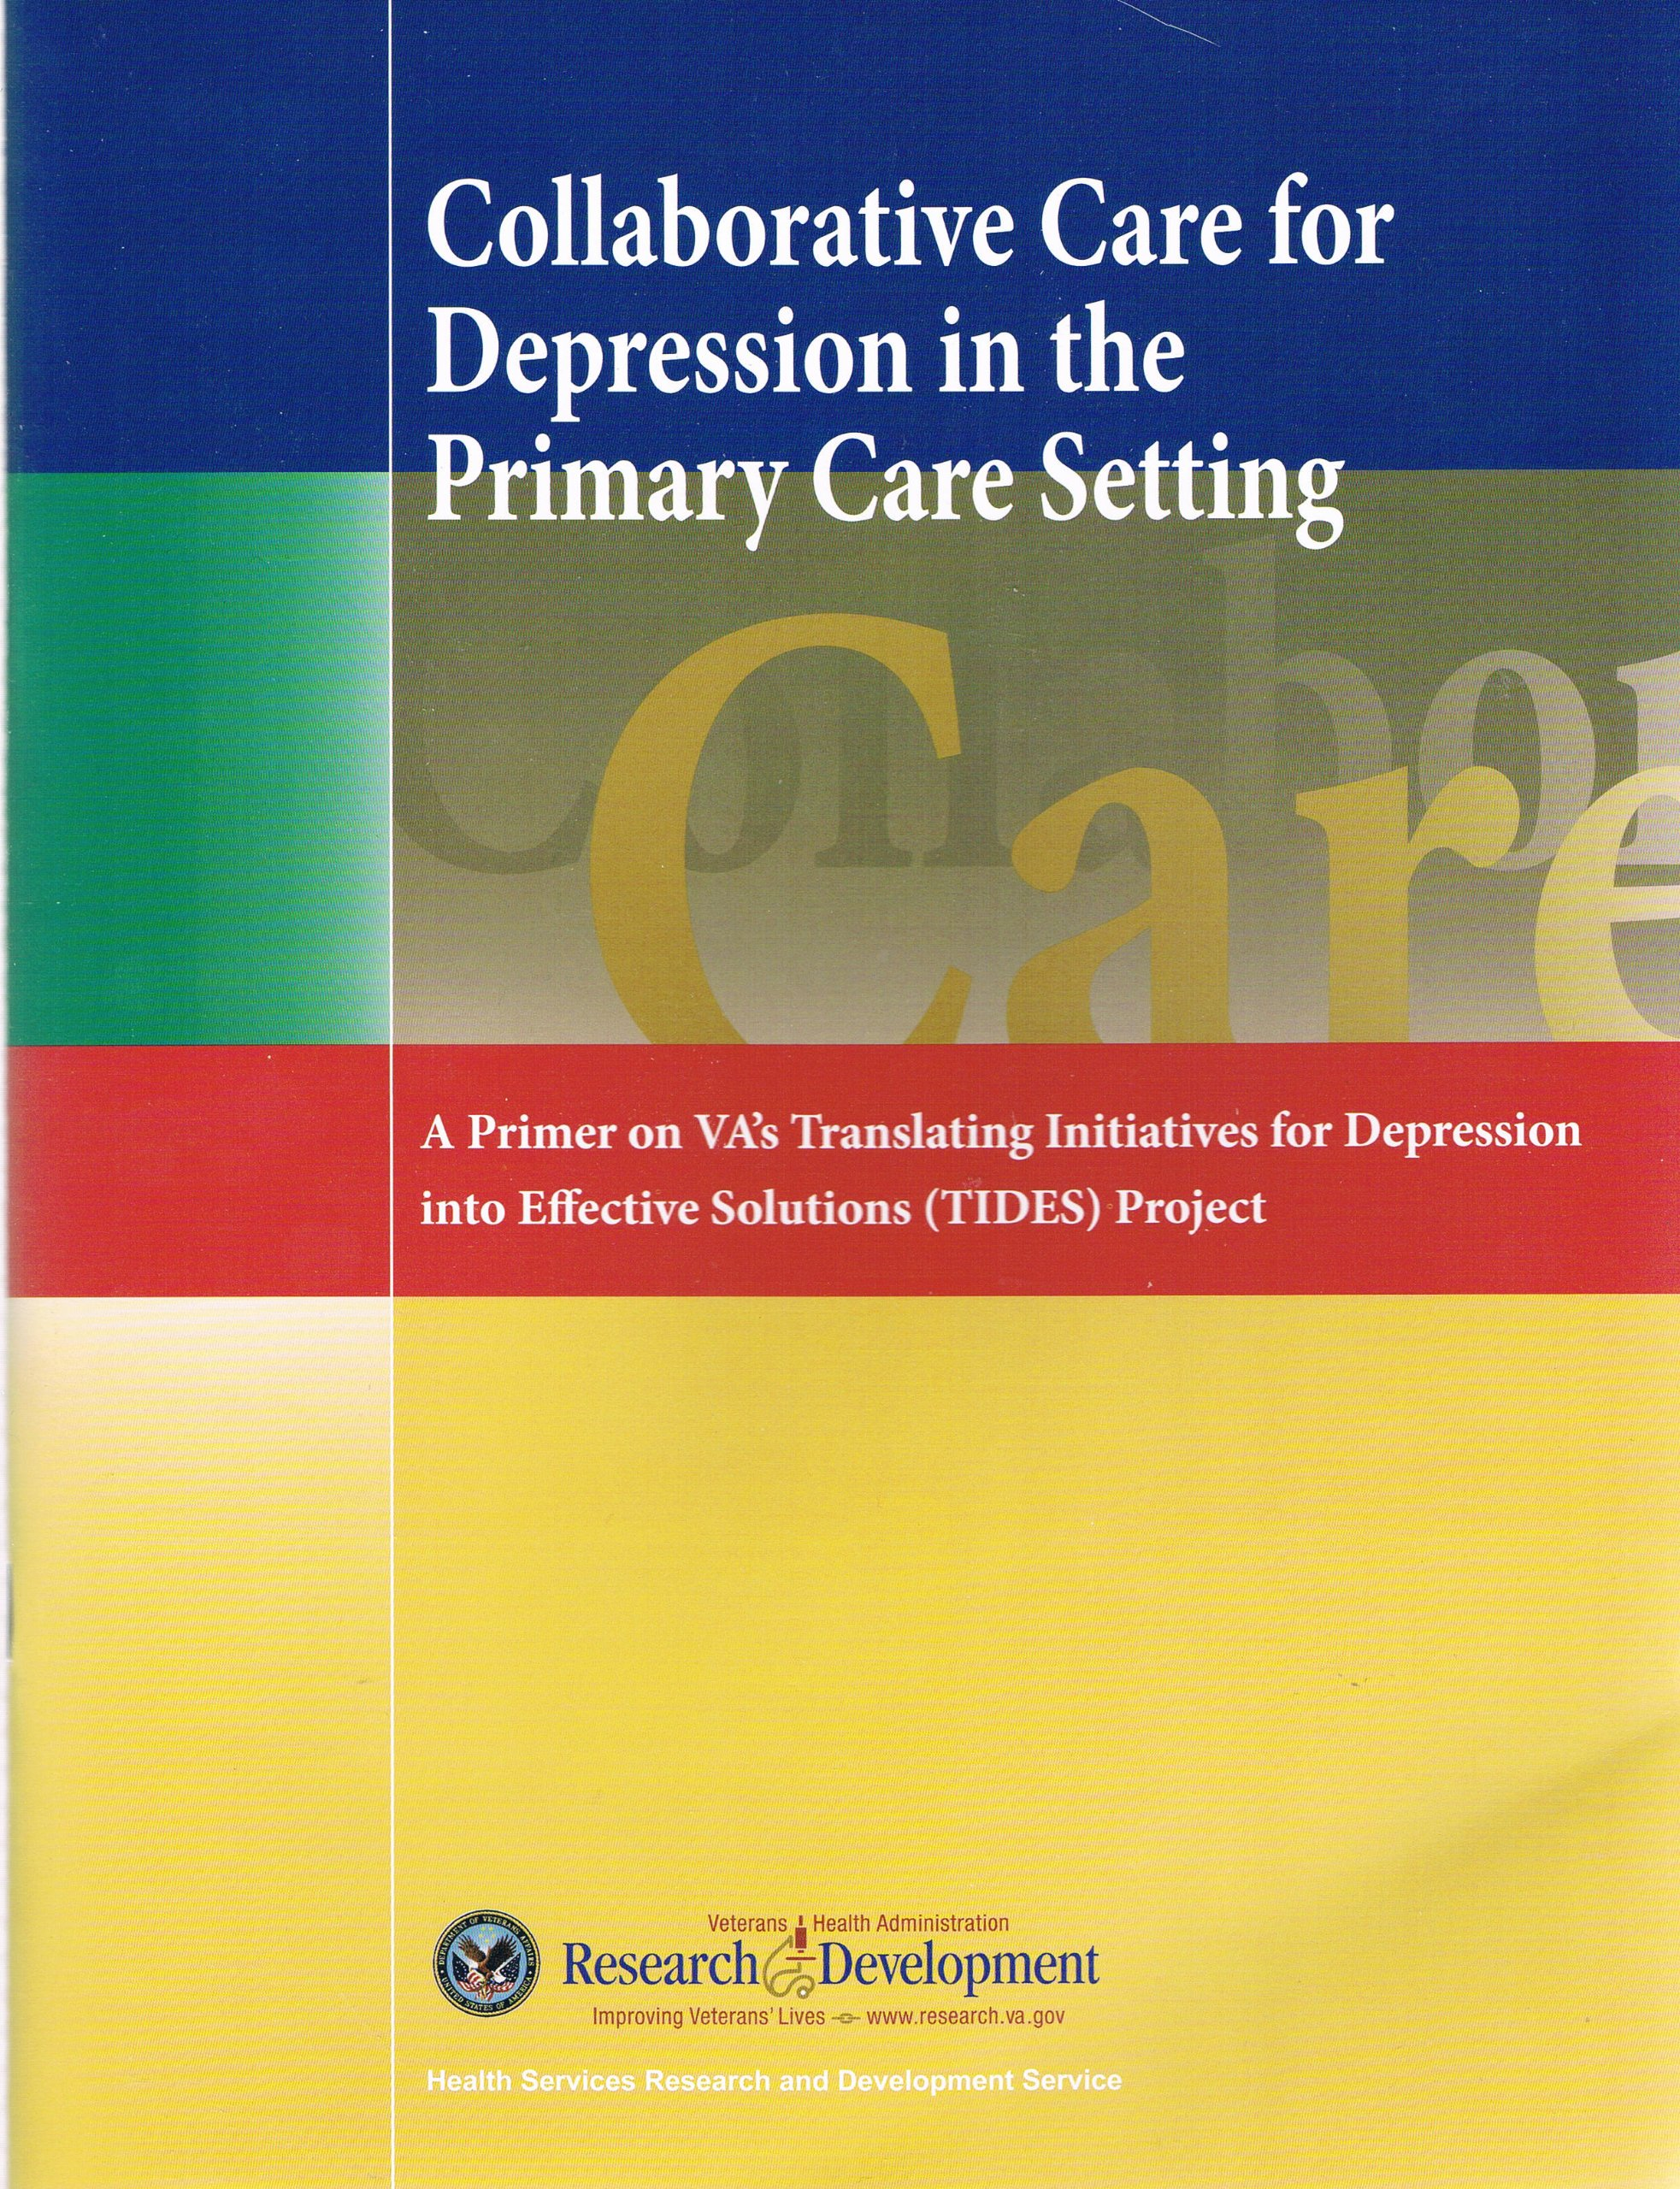 Read Online Collaborativde Care for Depression in the Primary Care Setting (A Primer on VA's Translating Initiatives for Depression) pdf